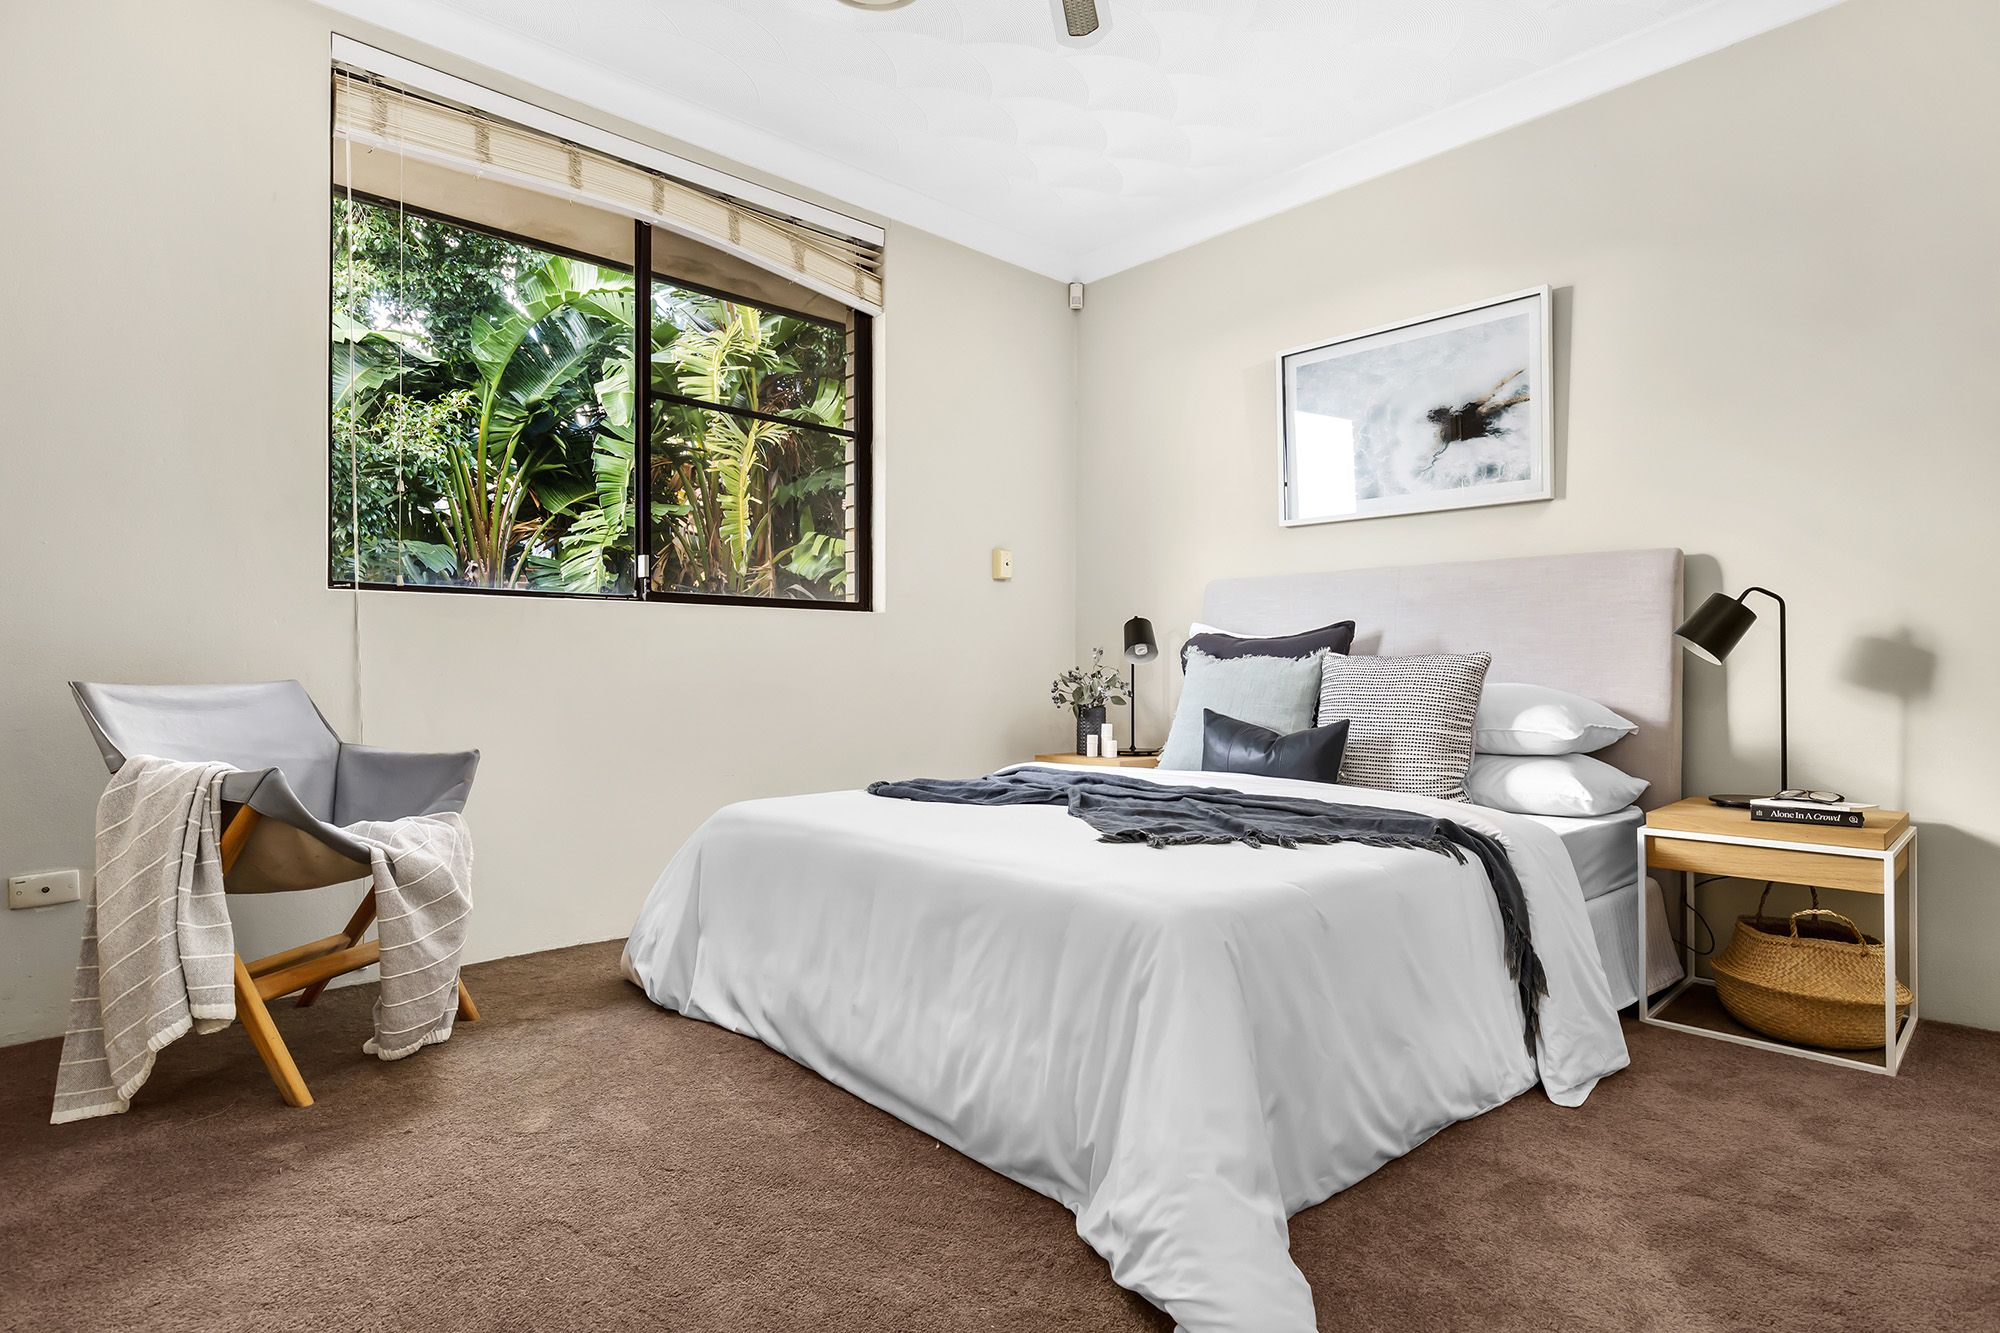 2/156 Wellbank Street North Strathfield 2137